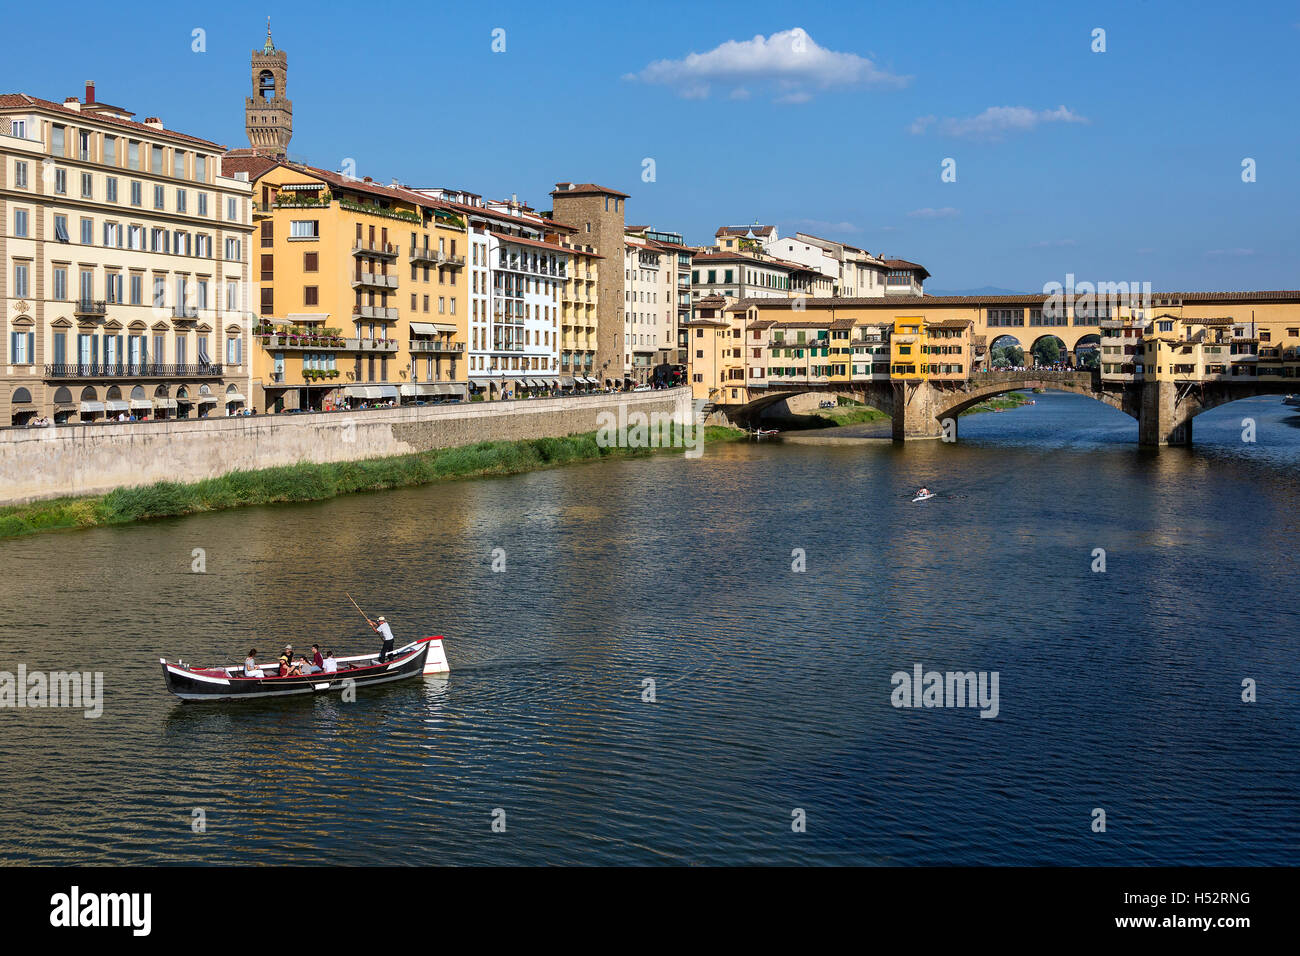 Florence, Italy - The Ponte Vecchio (Old Bridge] is a Medieval stone bridge over the Arno River. - Stock Image